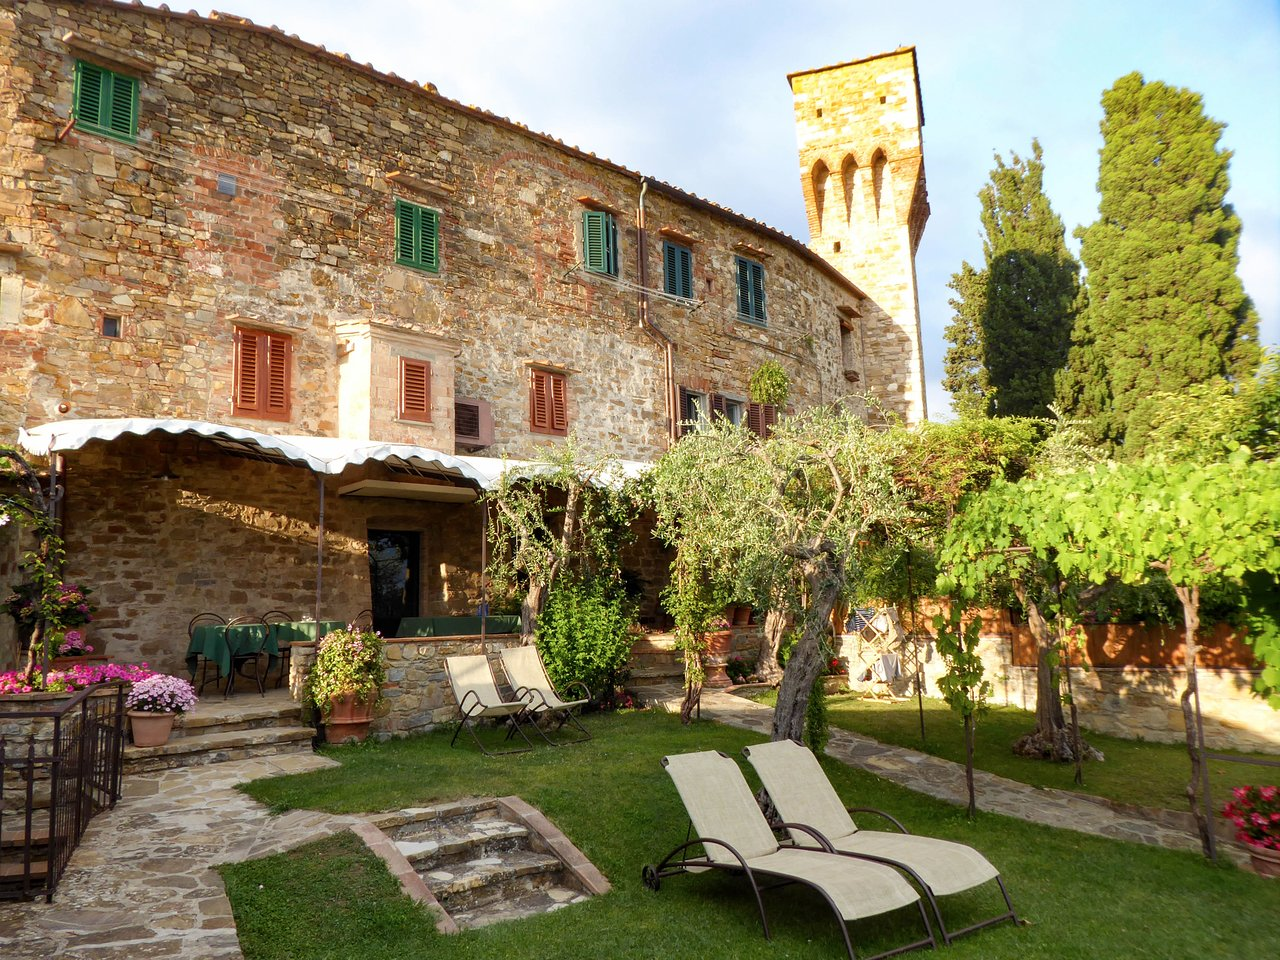 Soggiorno Italia Tavarnelle Val Di Pesa The 5 Best San Donato In Poggio Bed And Breakfasts Of 2019 With